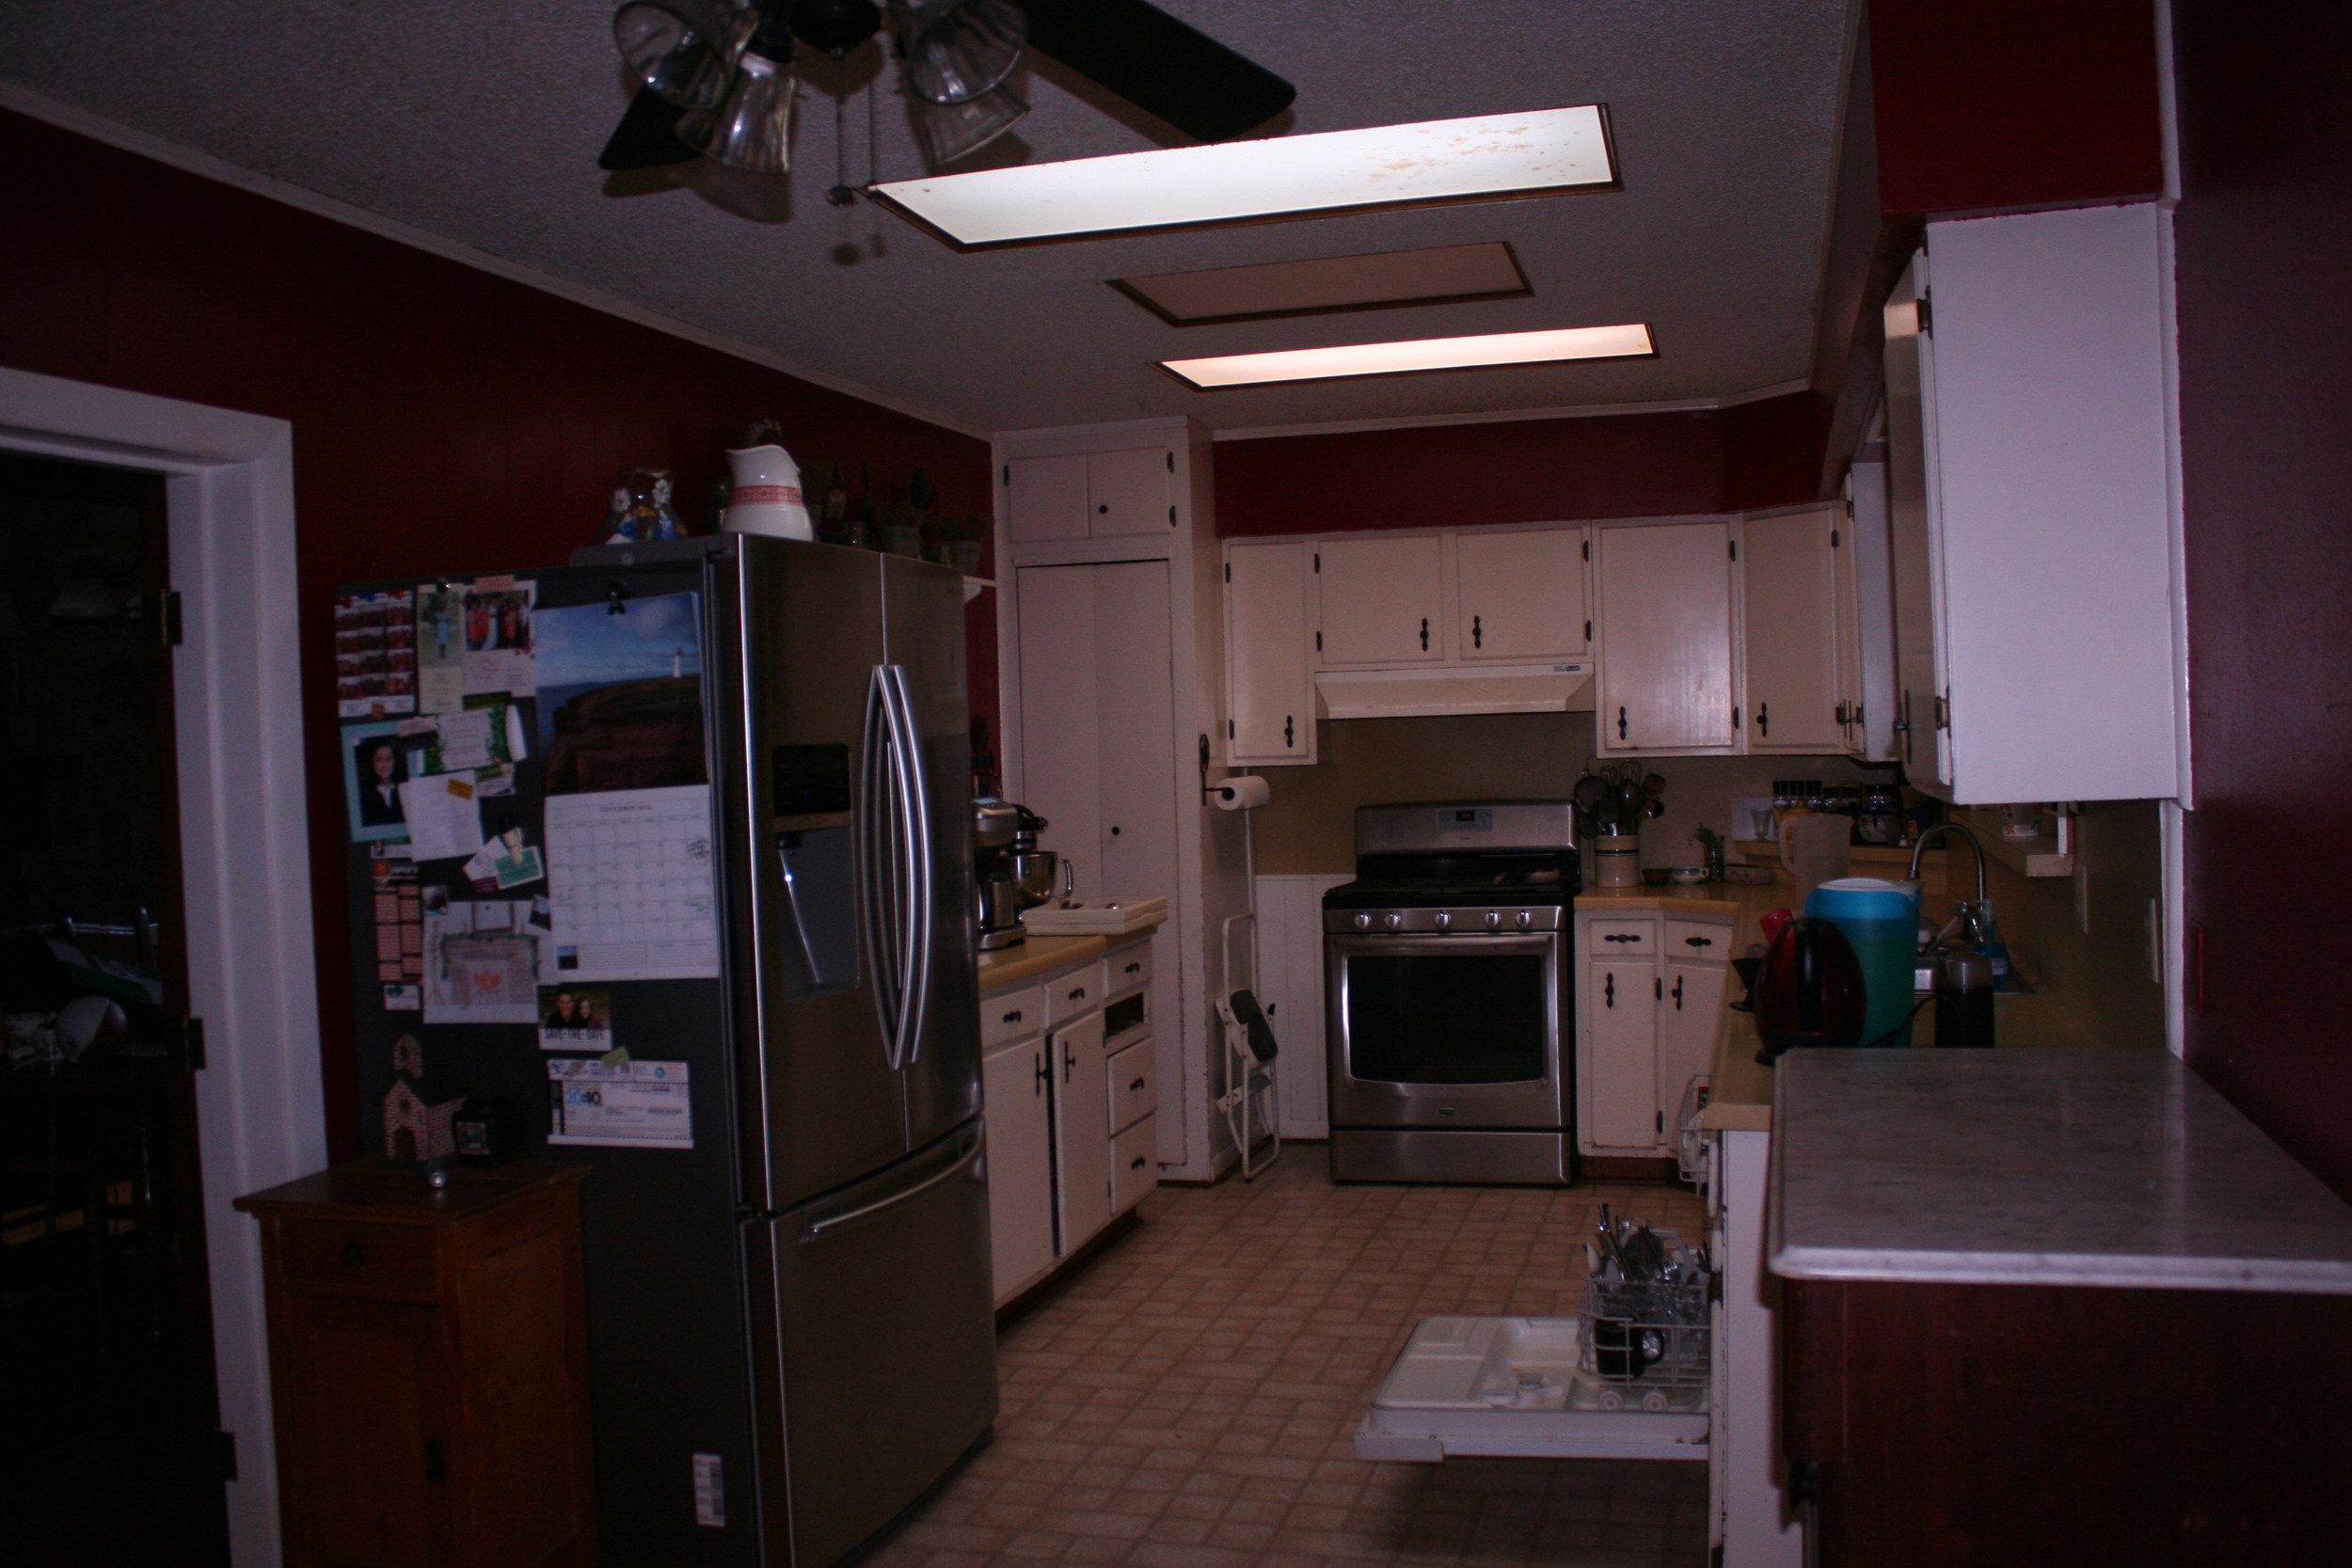 This is what my kitchen looks like now- before the renovation.